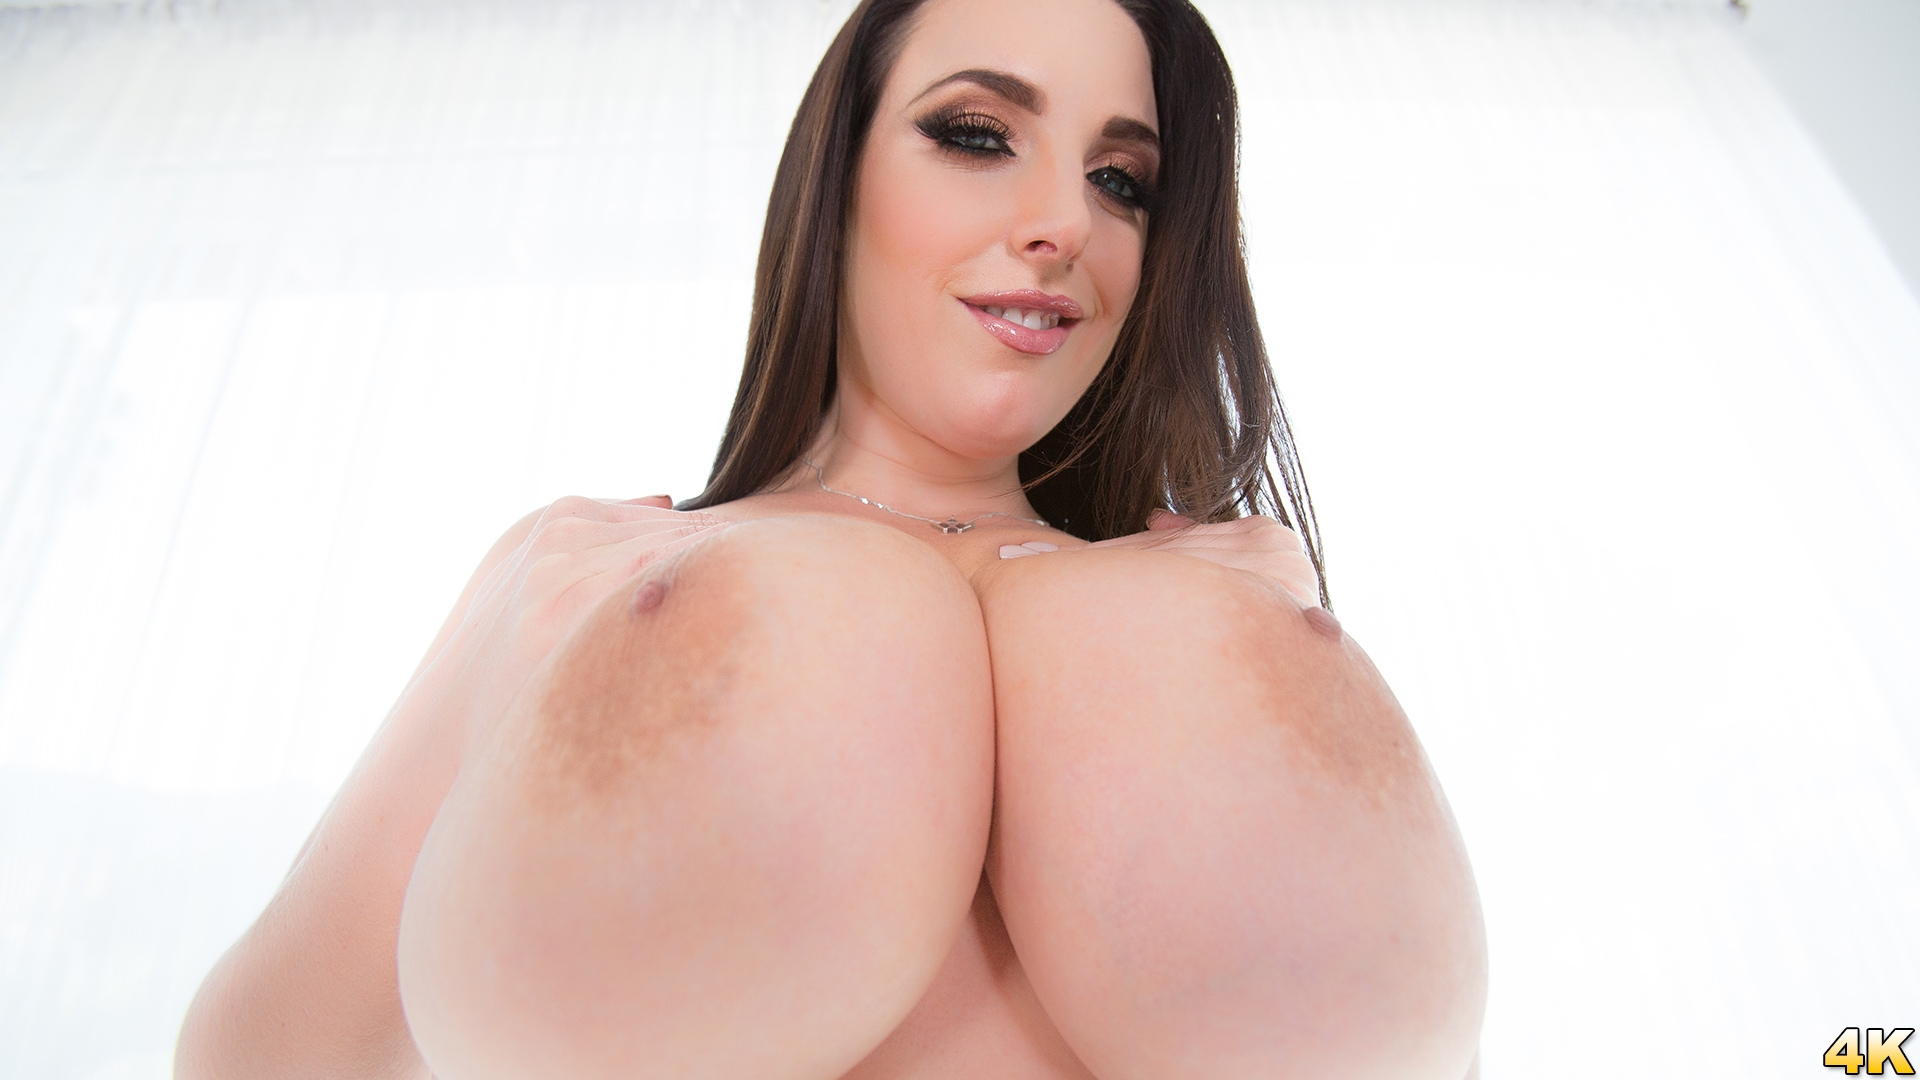 JulesJordan.com - Angela White Shows Off Her Big Natural 42G Tits, This Aussie Gets A Cock In Her Outback!